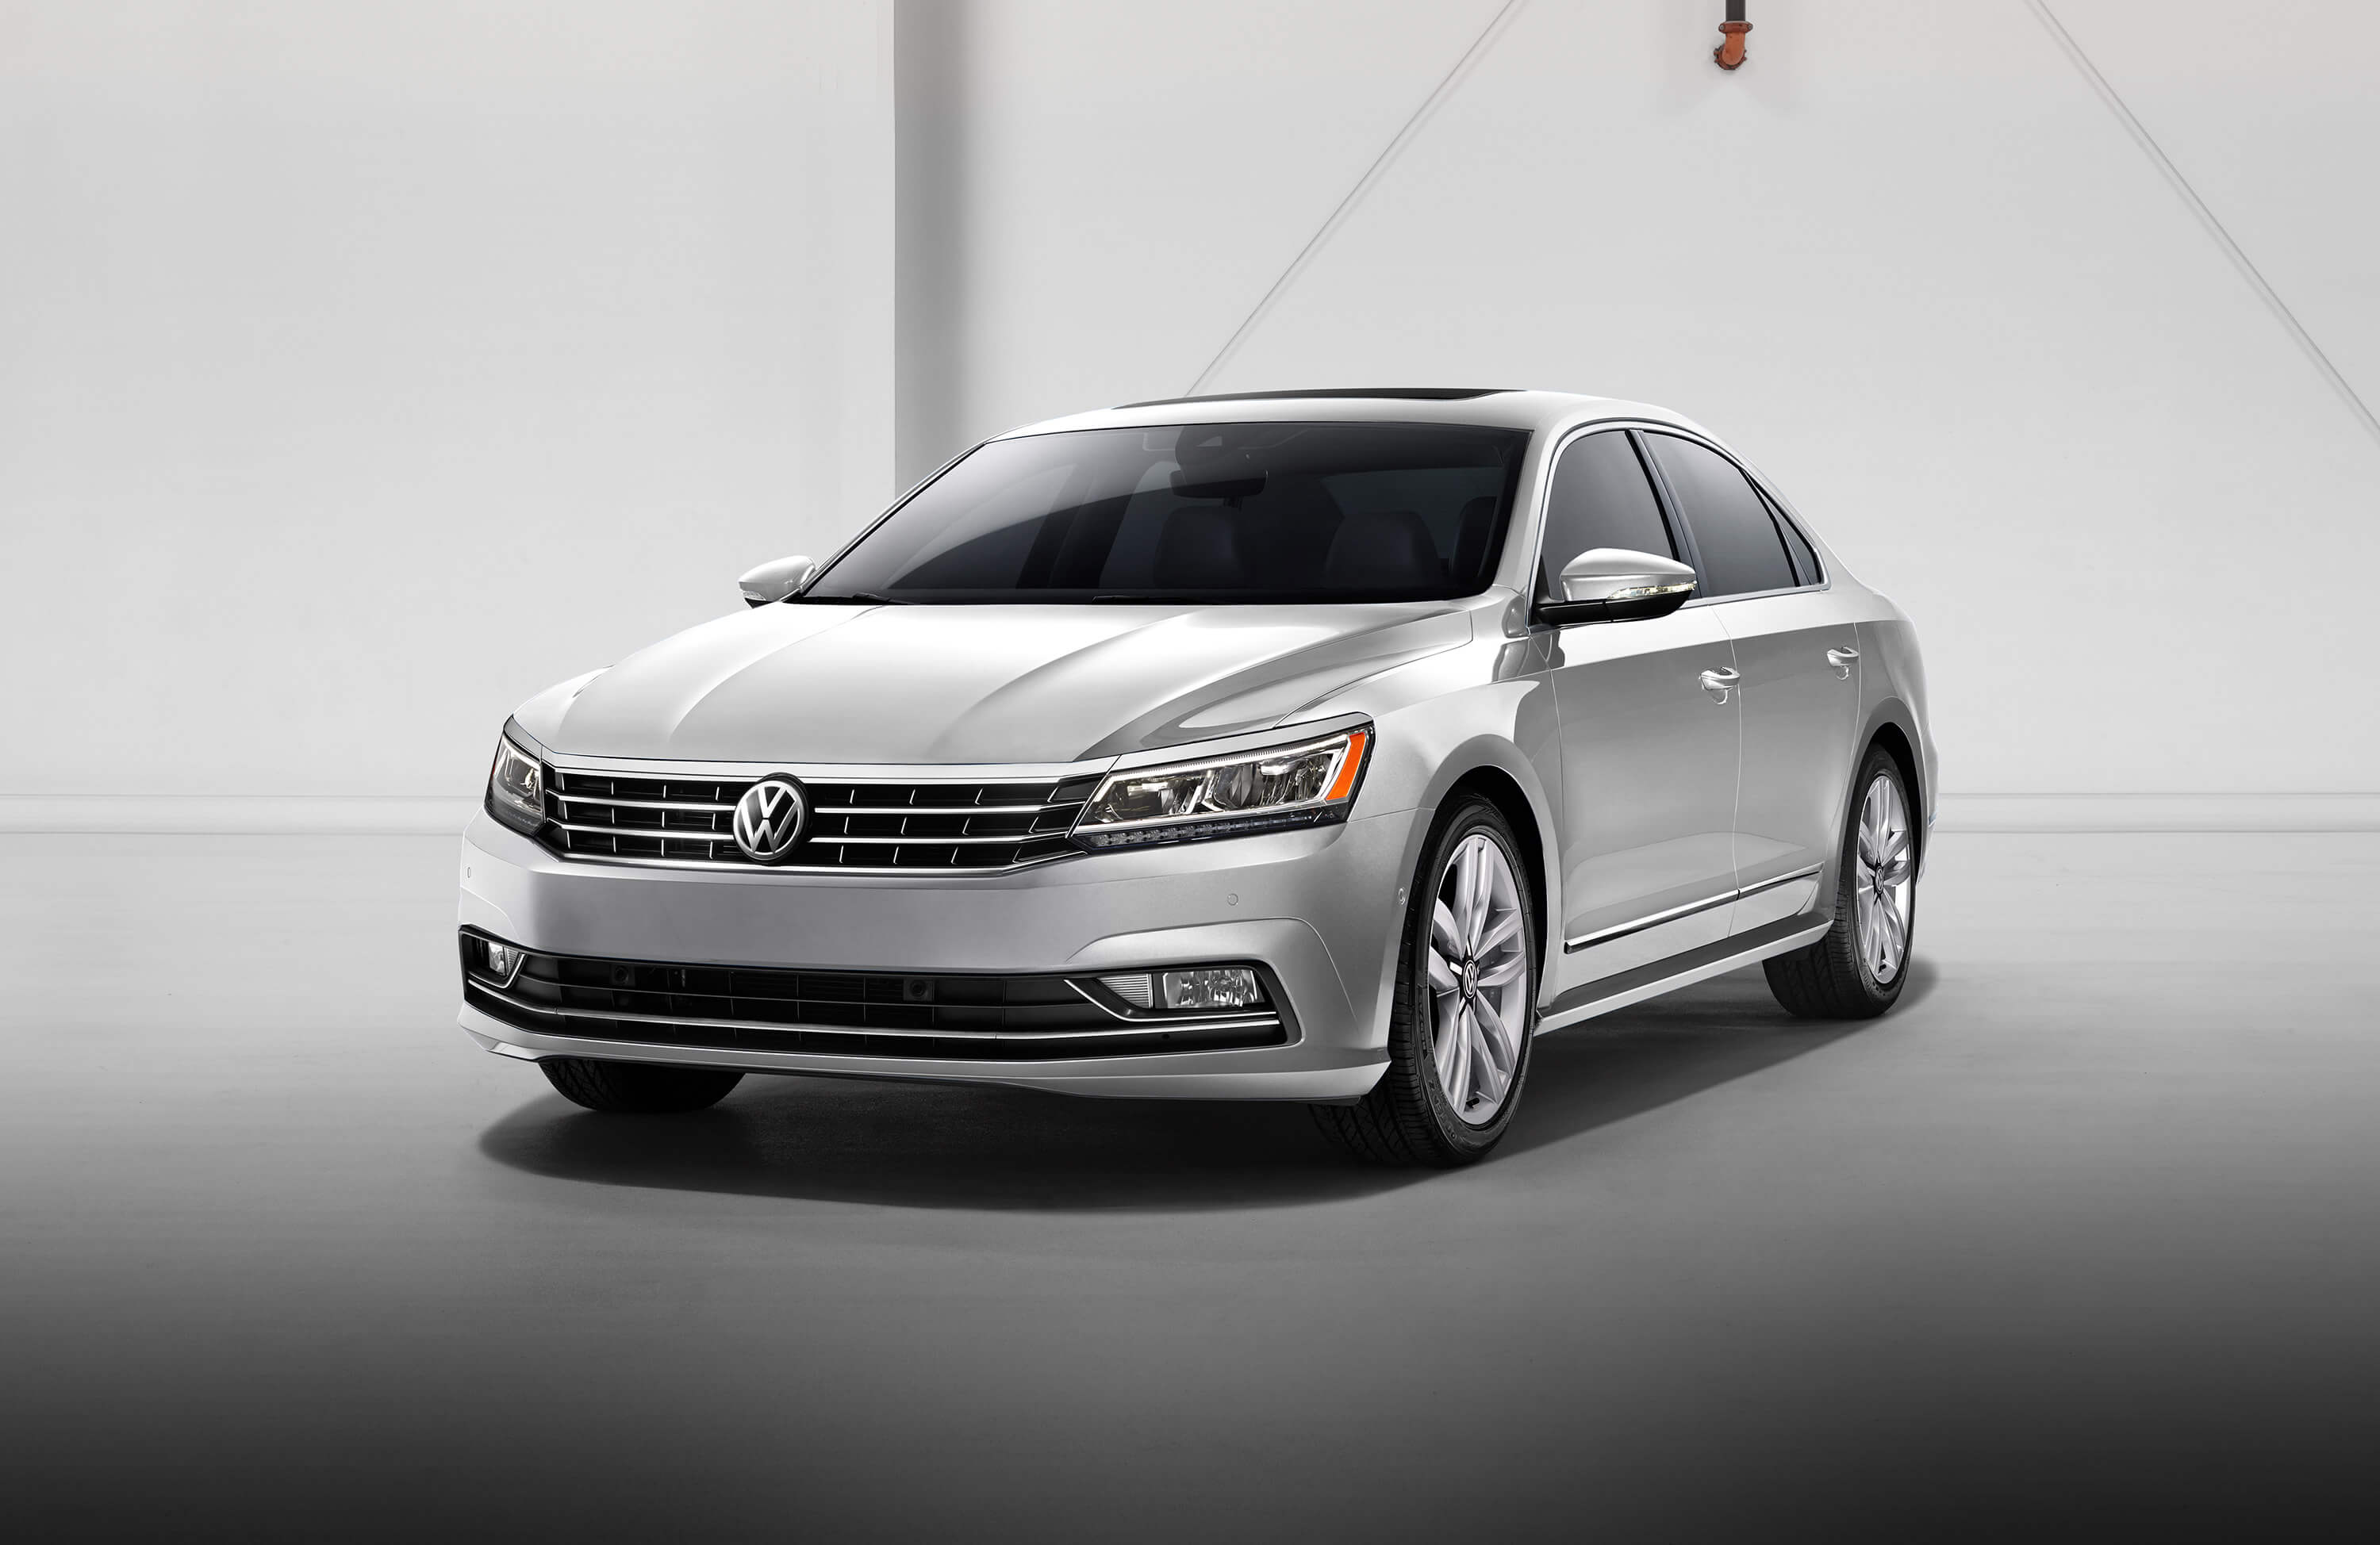 Learn All About The 2016 Vw Passat On New Page Uncategorized